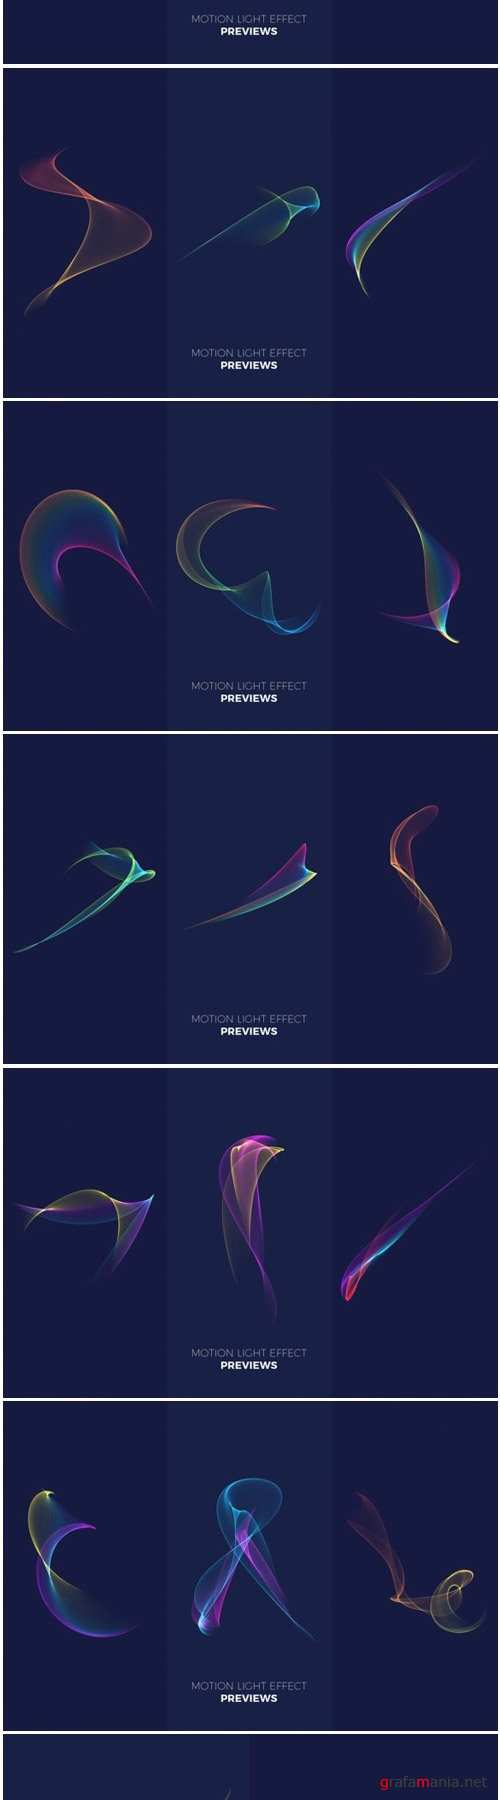 Abstract Motion Light Effects Pack